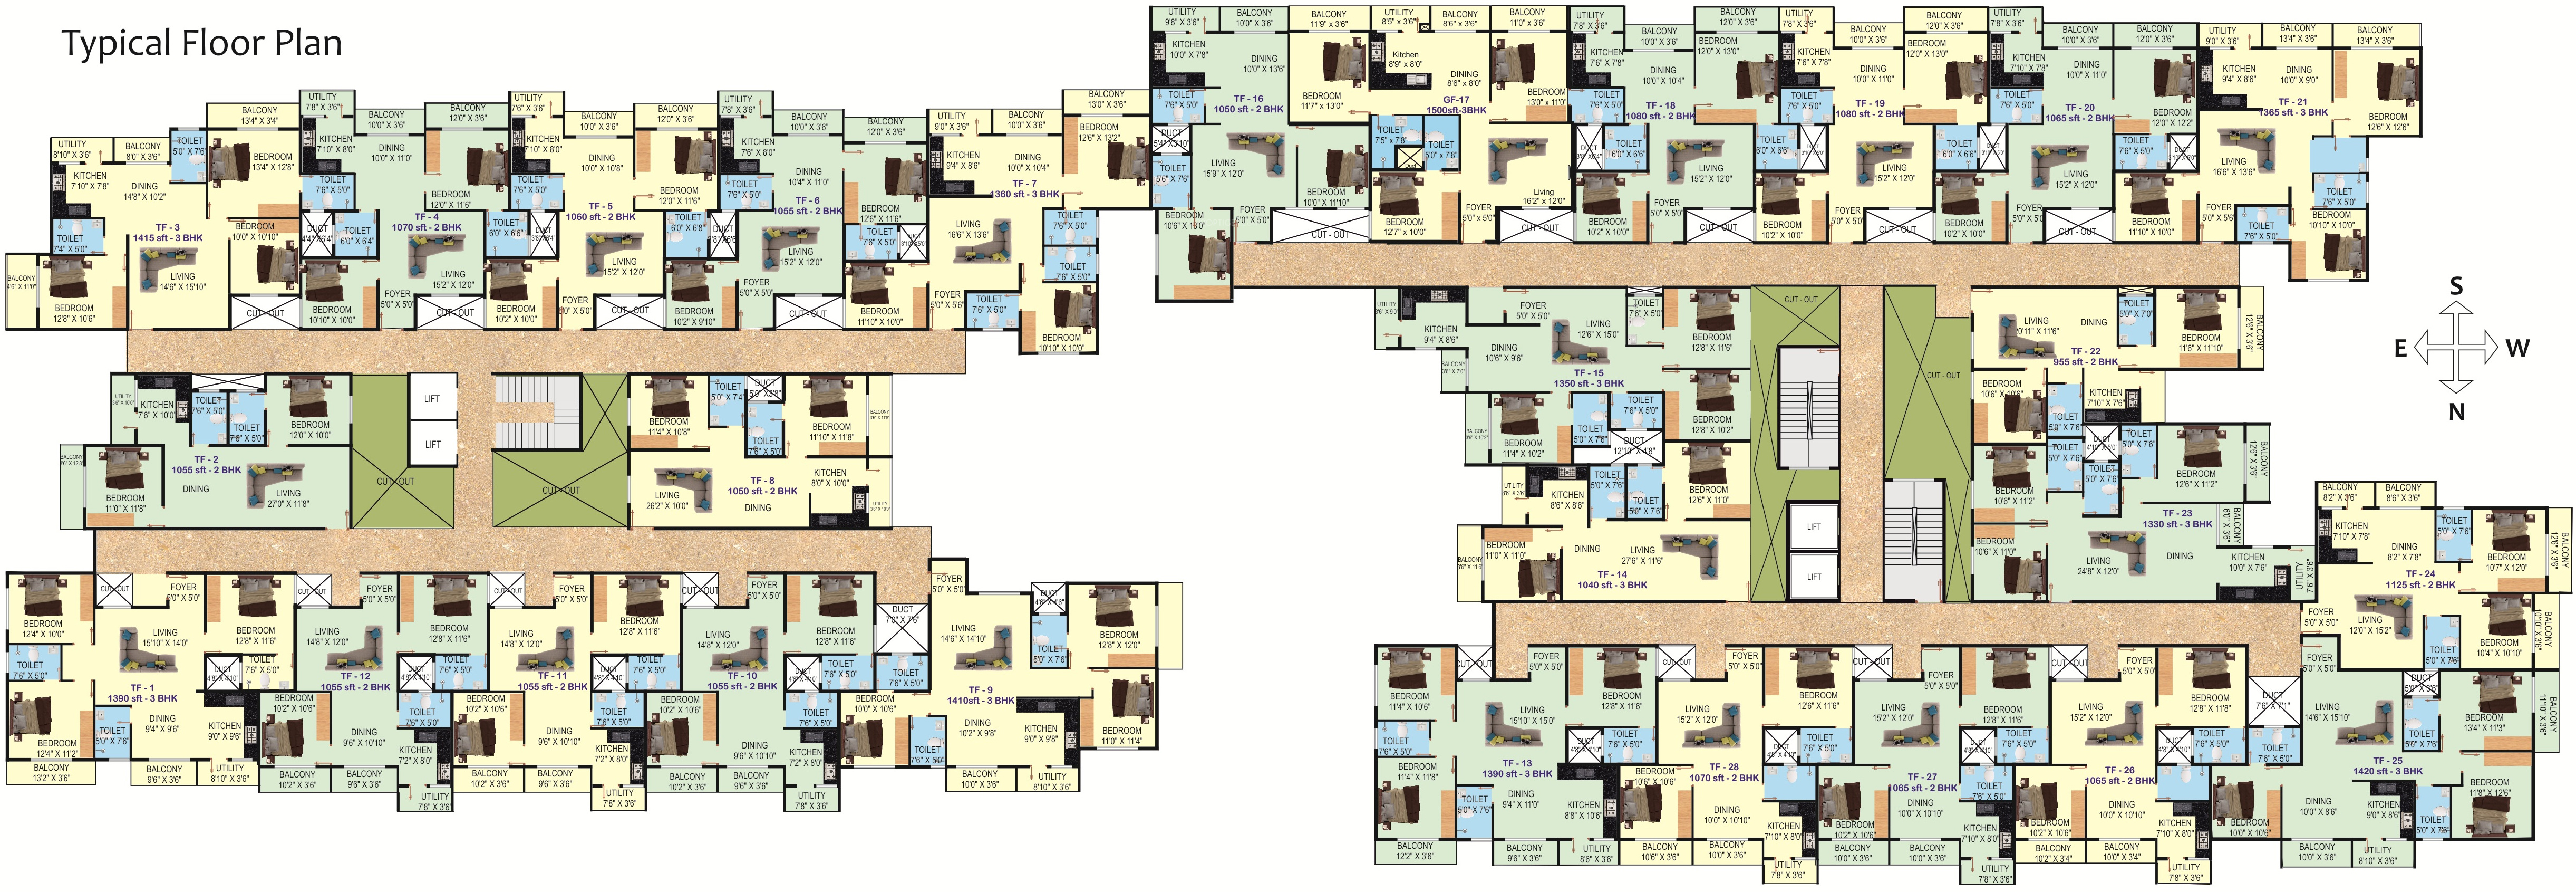 Trillium Floor Plan 1415 Sq Ft 3 Bhk 2t Apartment For Sale In S And S Builders